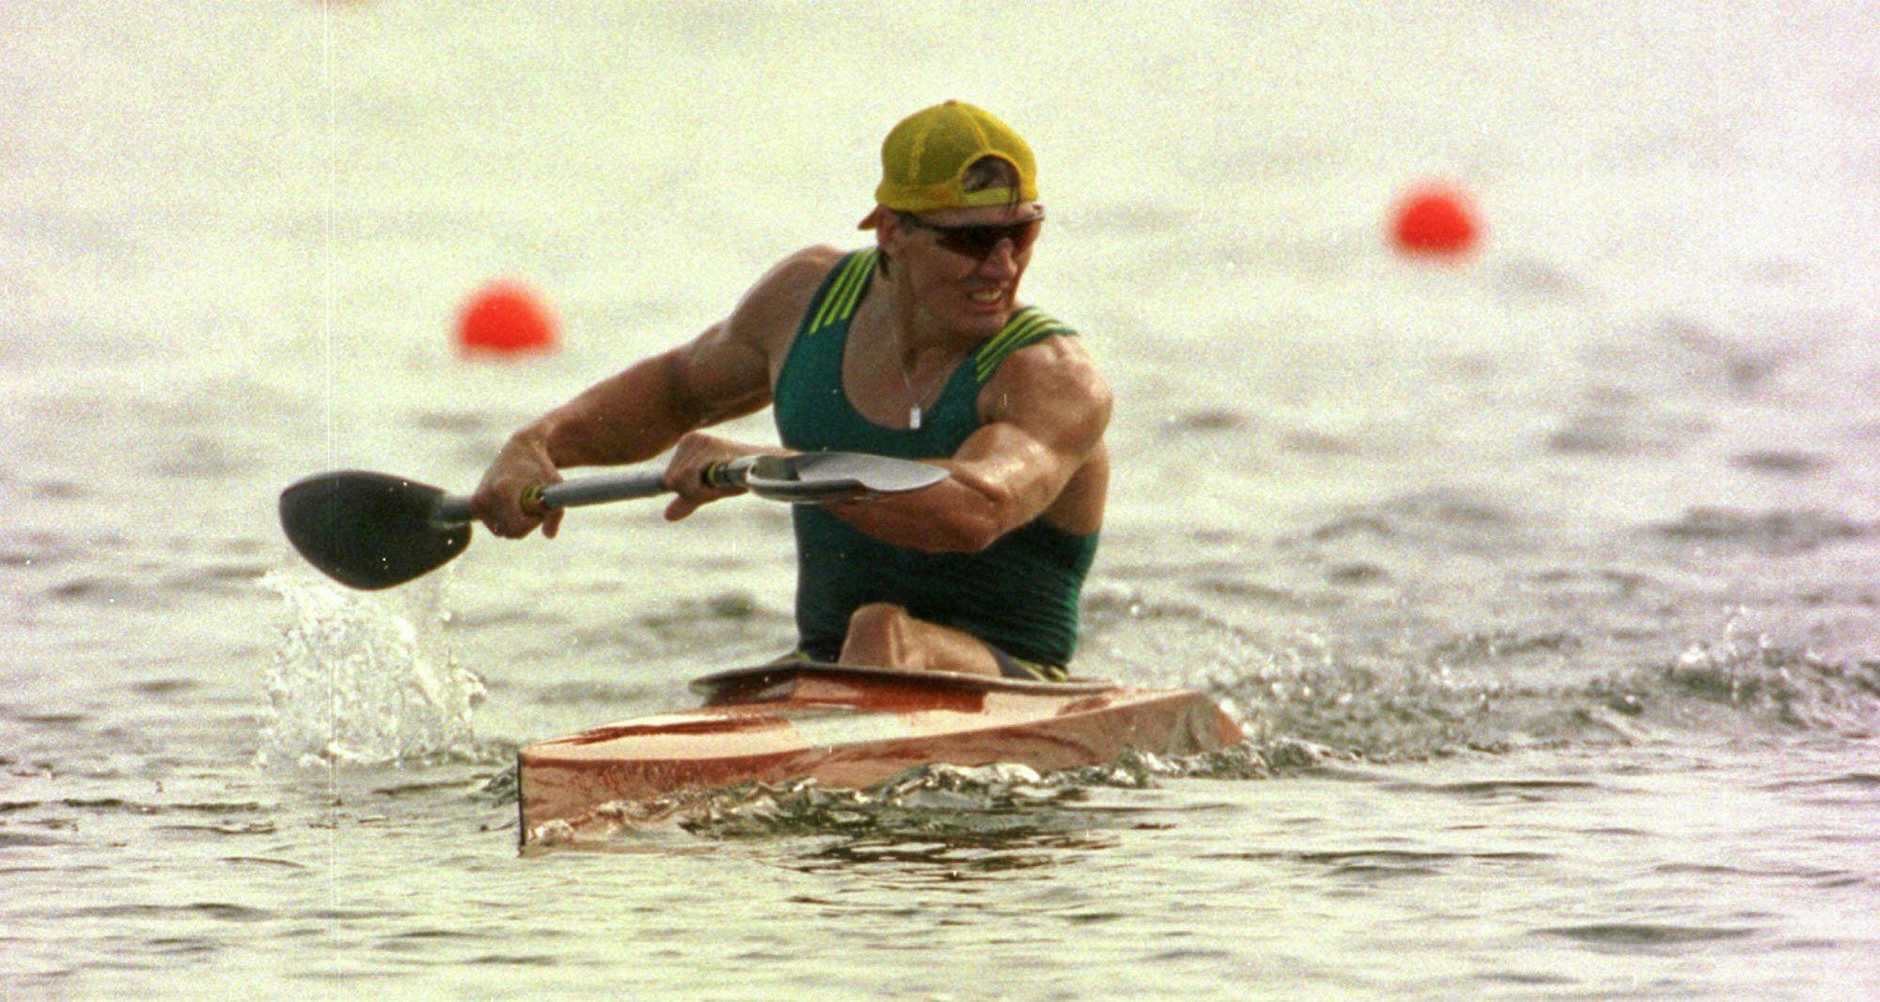 TALENTED: Clint Robinson during the 1996 Olympics at Lake Lanier.